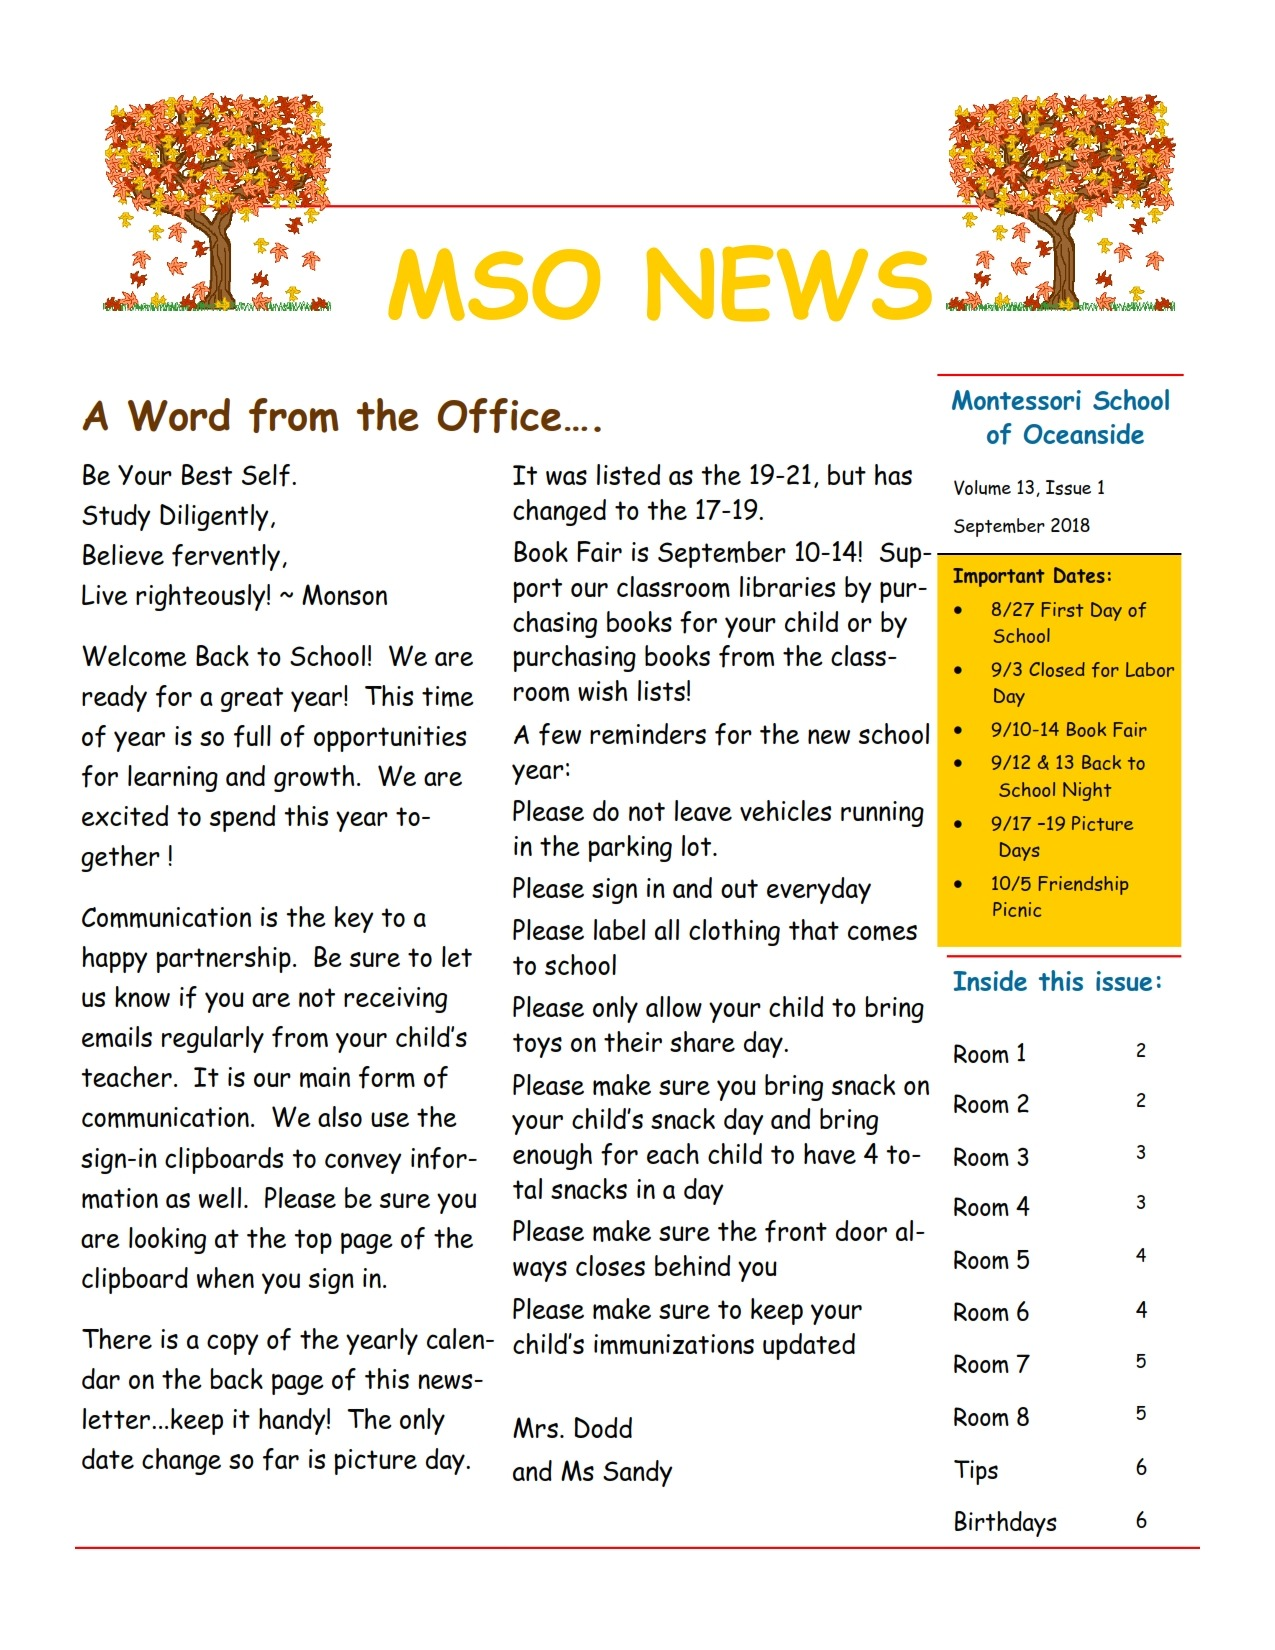 MSO September 2018 Newsletter. A Word from the Office...